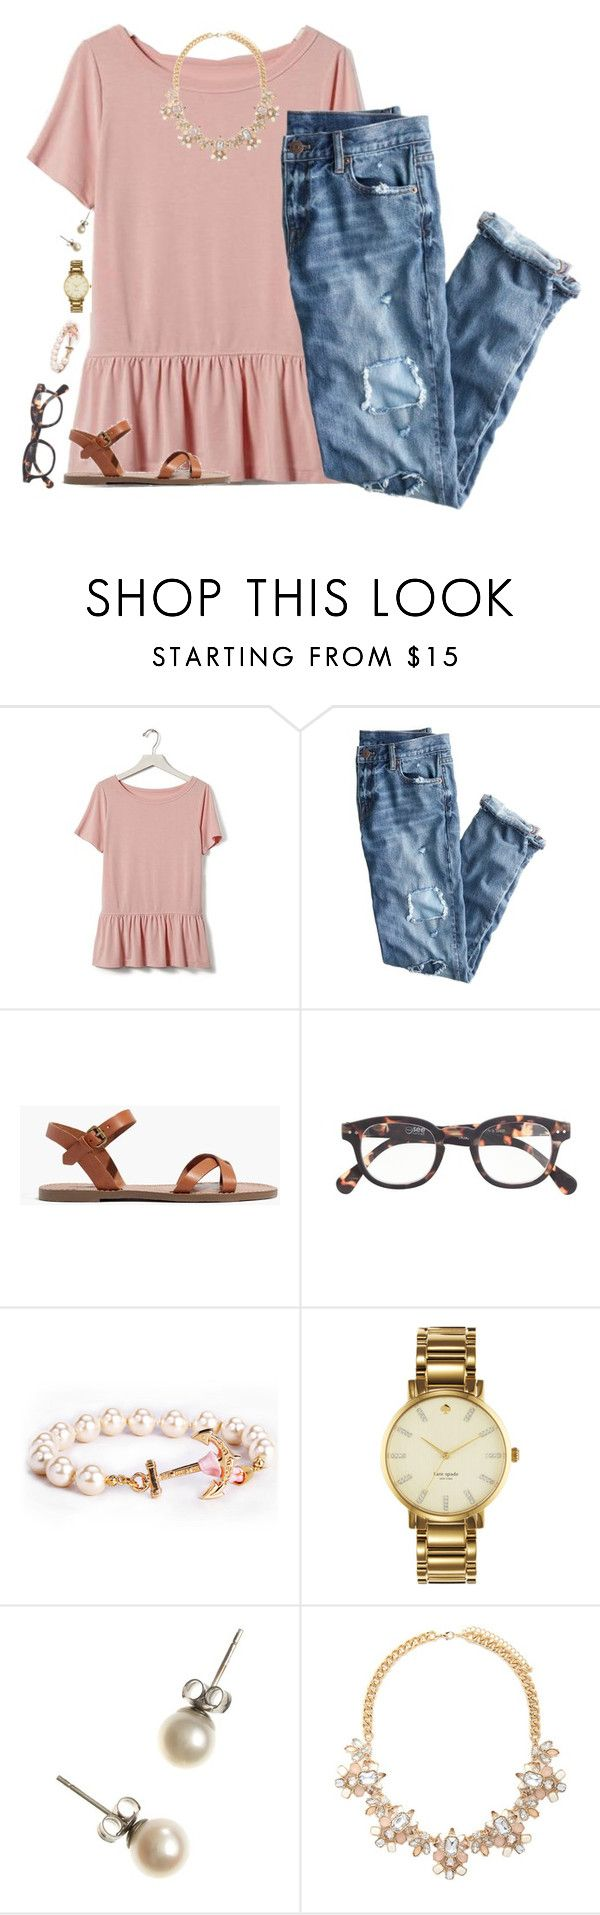 """School Days are coming again"" by pink-palmetto ❤ liked on Polyvore featuring Banana Republic, J.Crew, Madewell, Kate Spade and Forever 21"